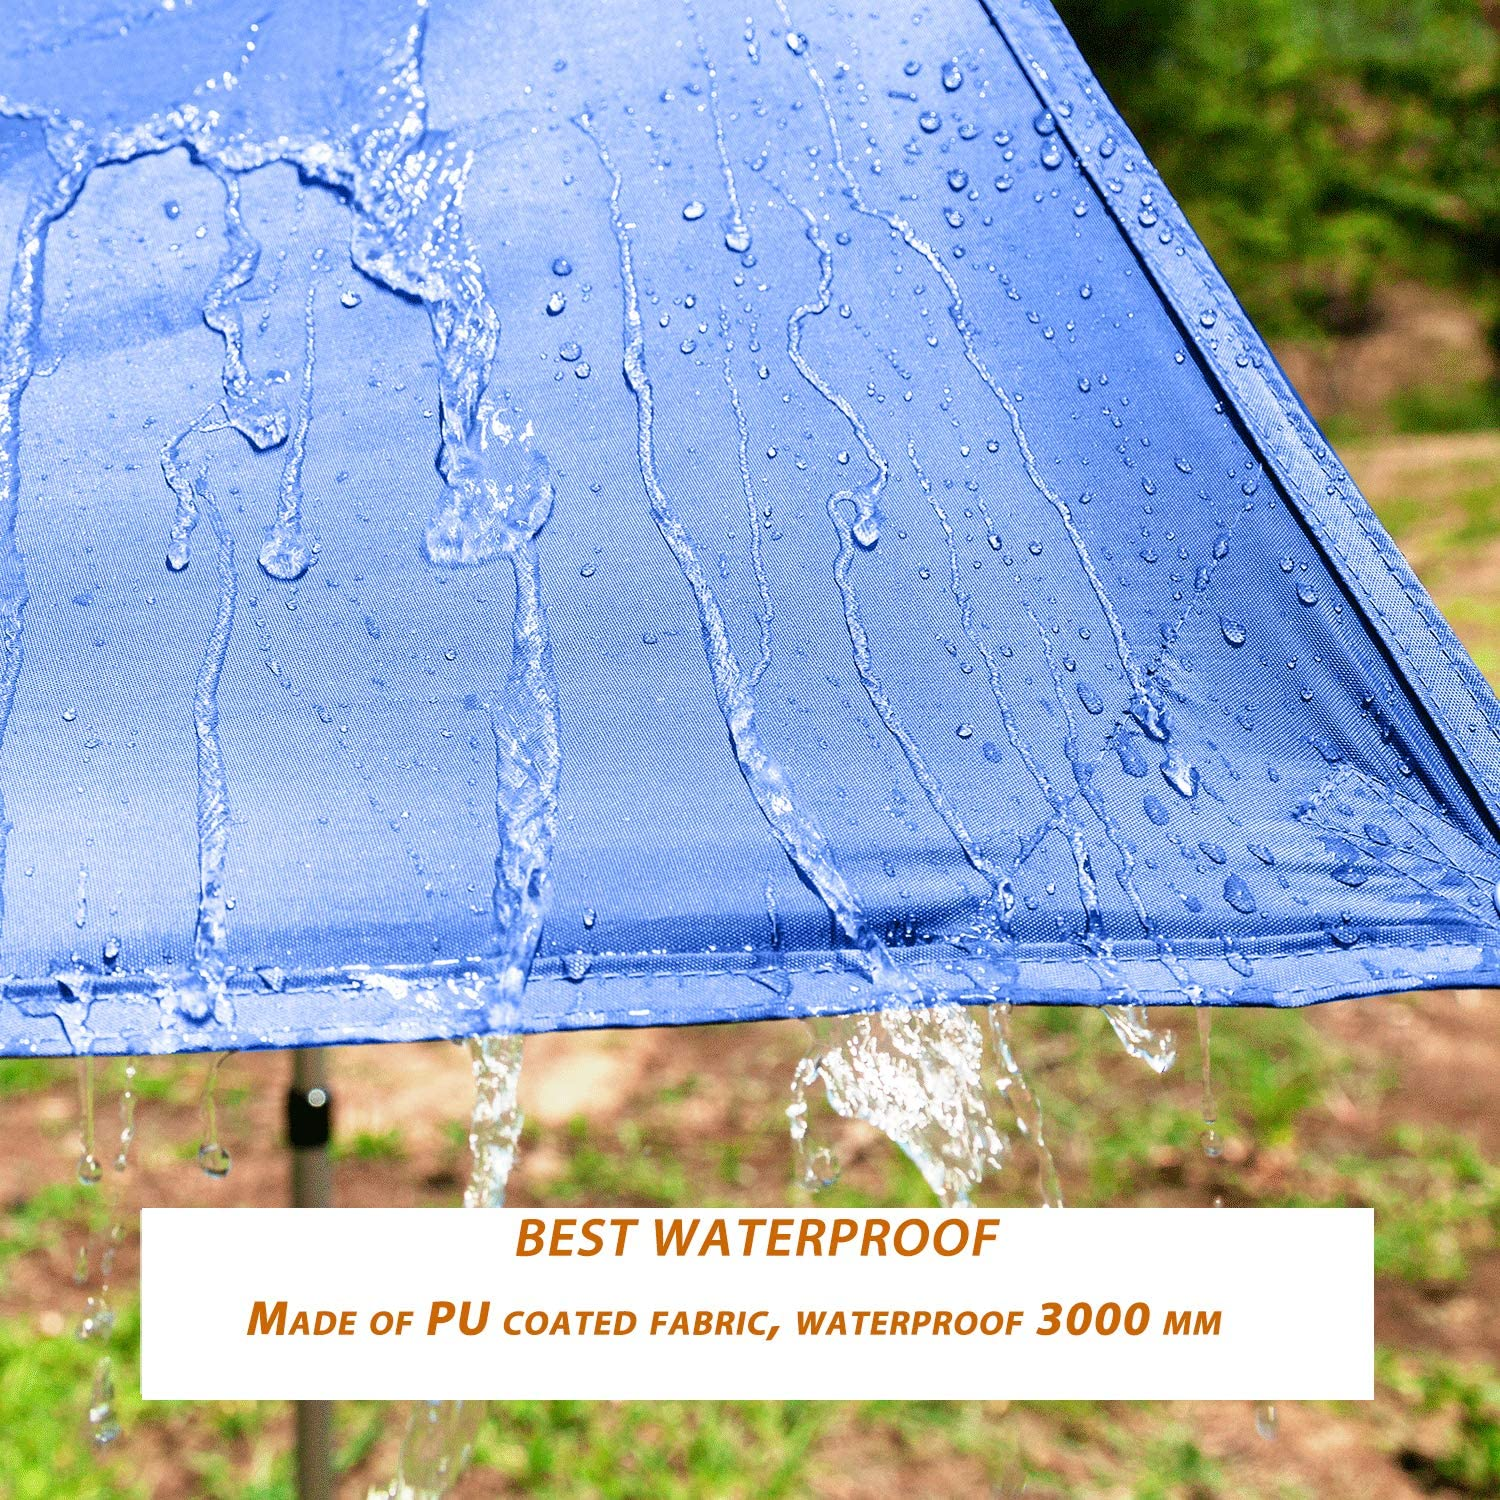 Picnic Or Beach Waterproof and UV-Resistant Camping Tent Tarp Perfect for Hammock Fishing Hiking 118.1 x 196.8 inches,Blue KingCamp Rain Fly Tarp-Lightweight Portable